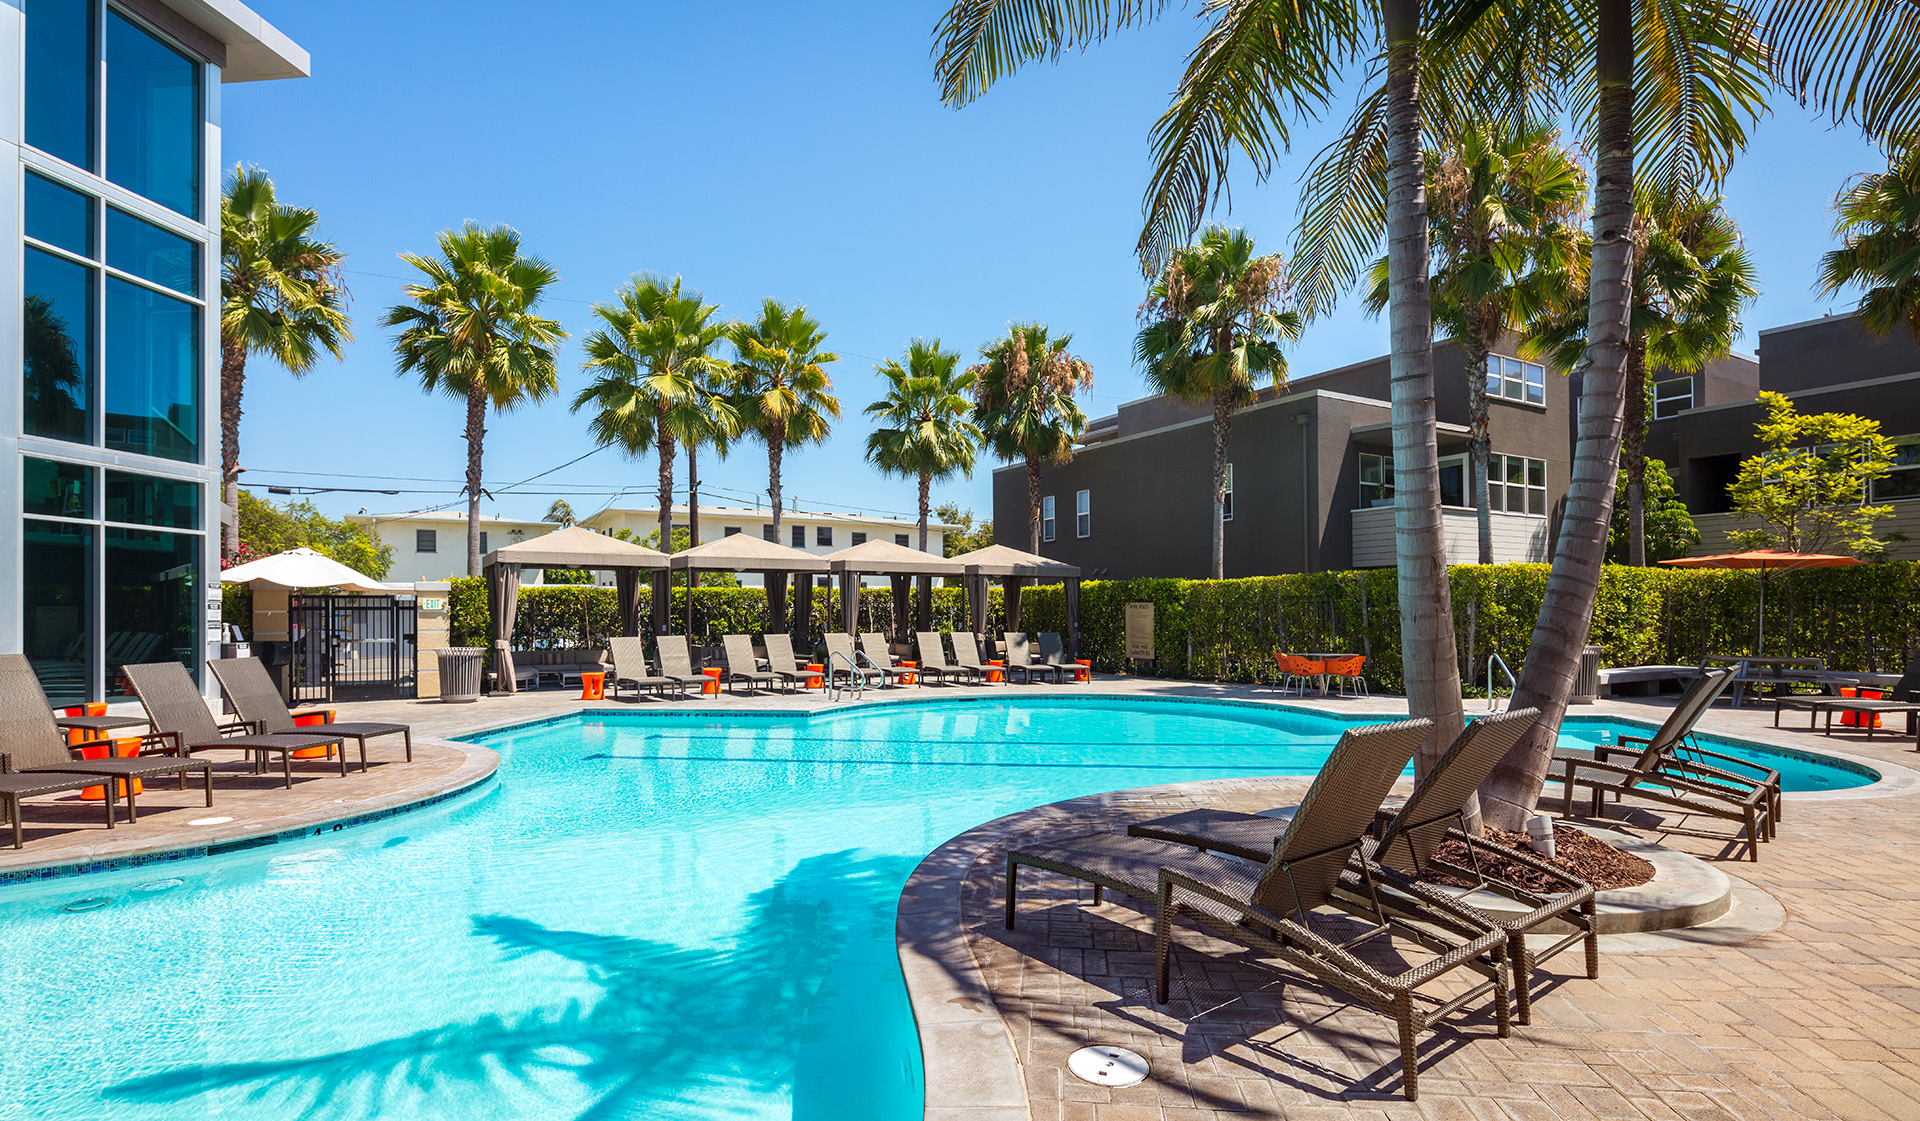 Lincoln Place - Venice, CA - Apartments